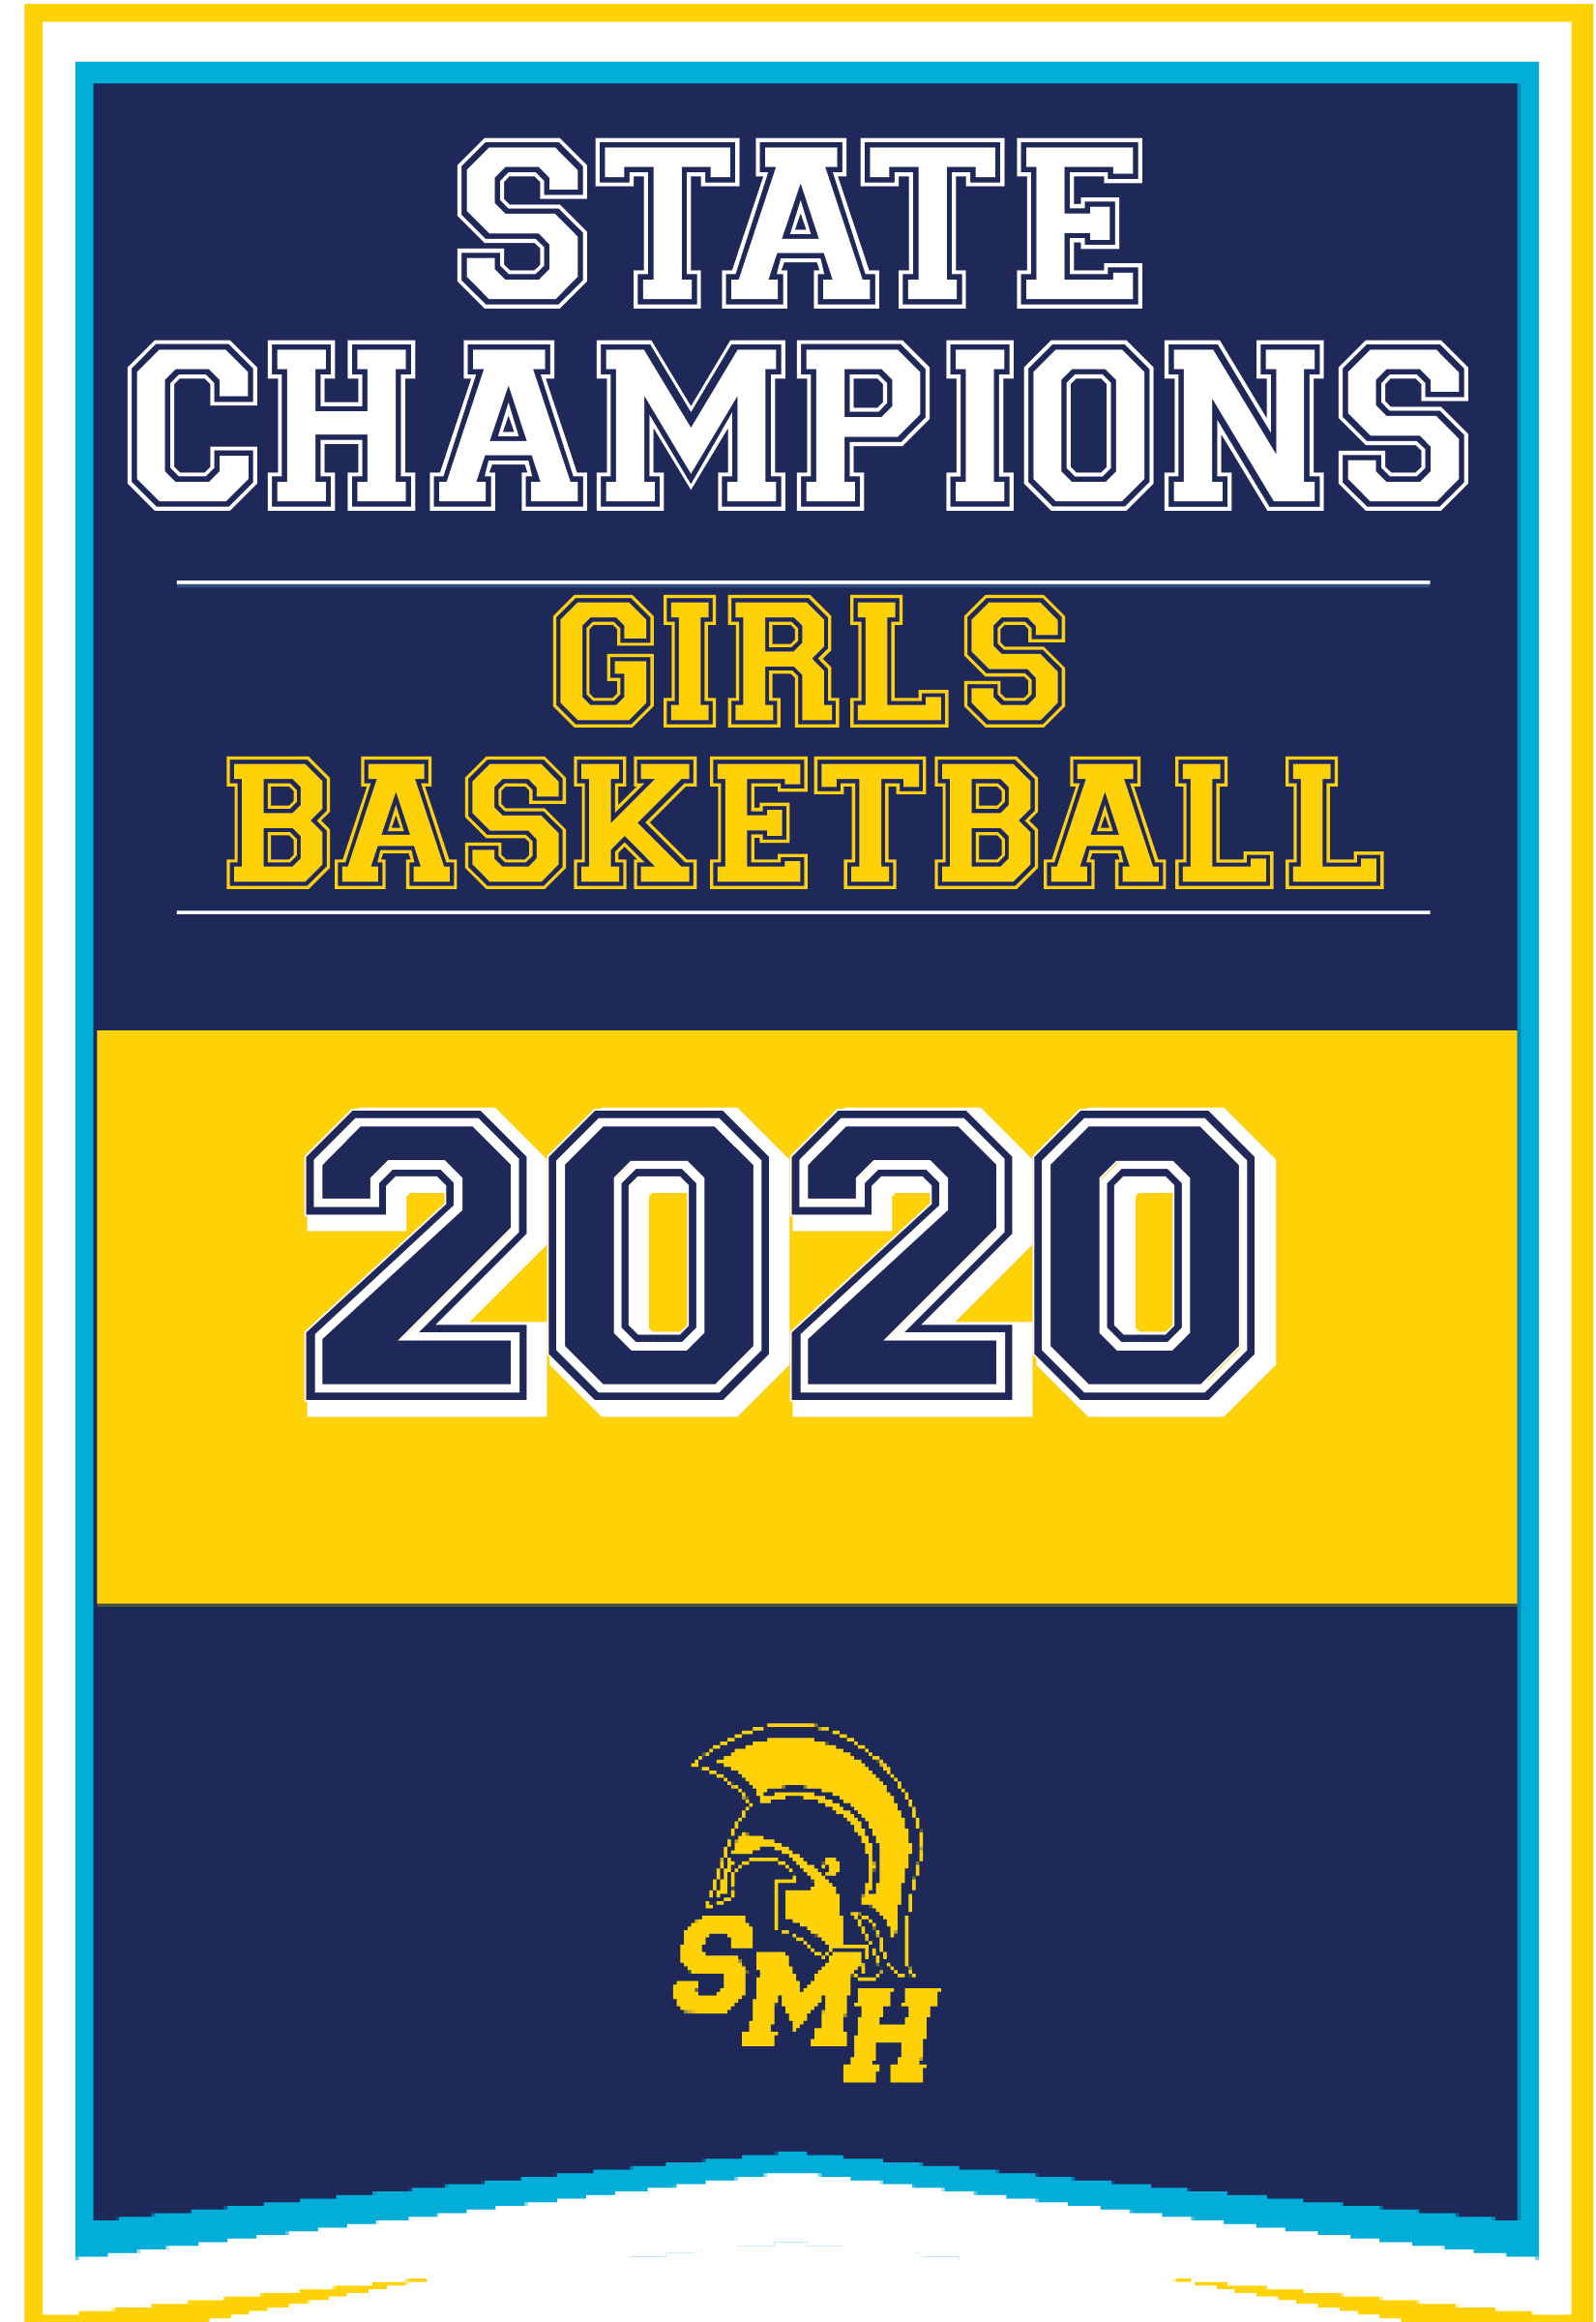 State Champions Girls Basketball 2020